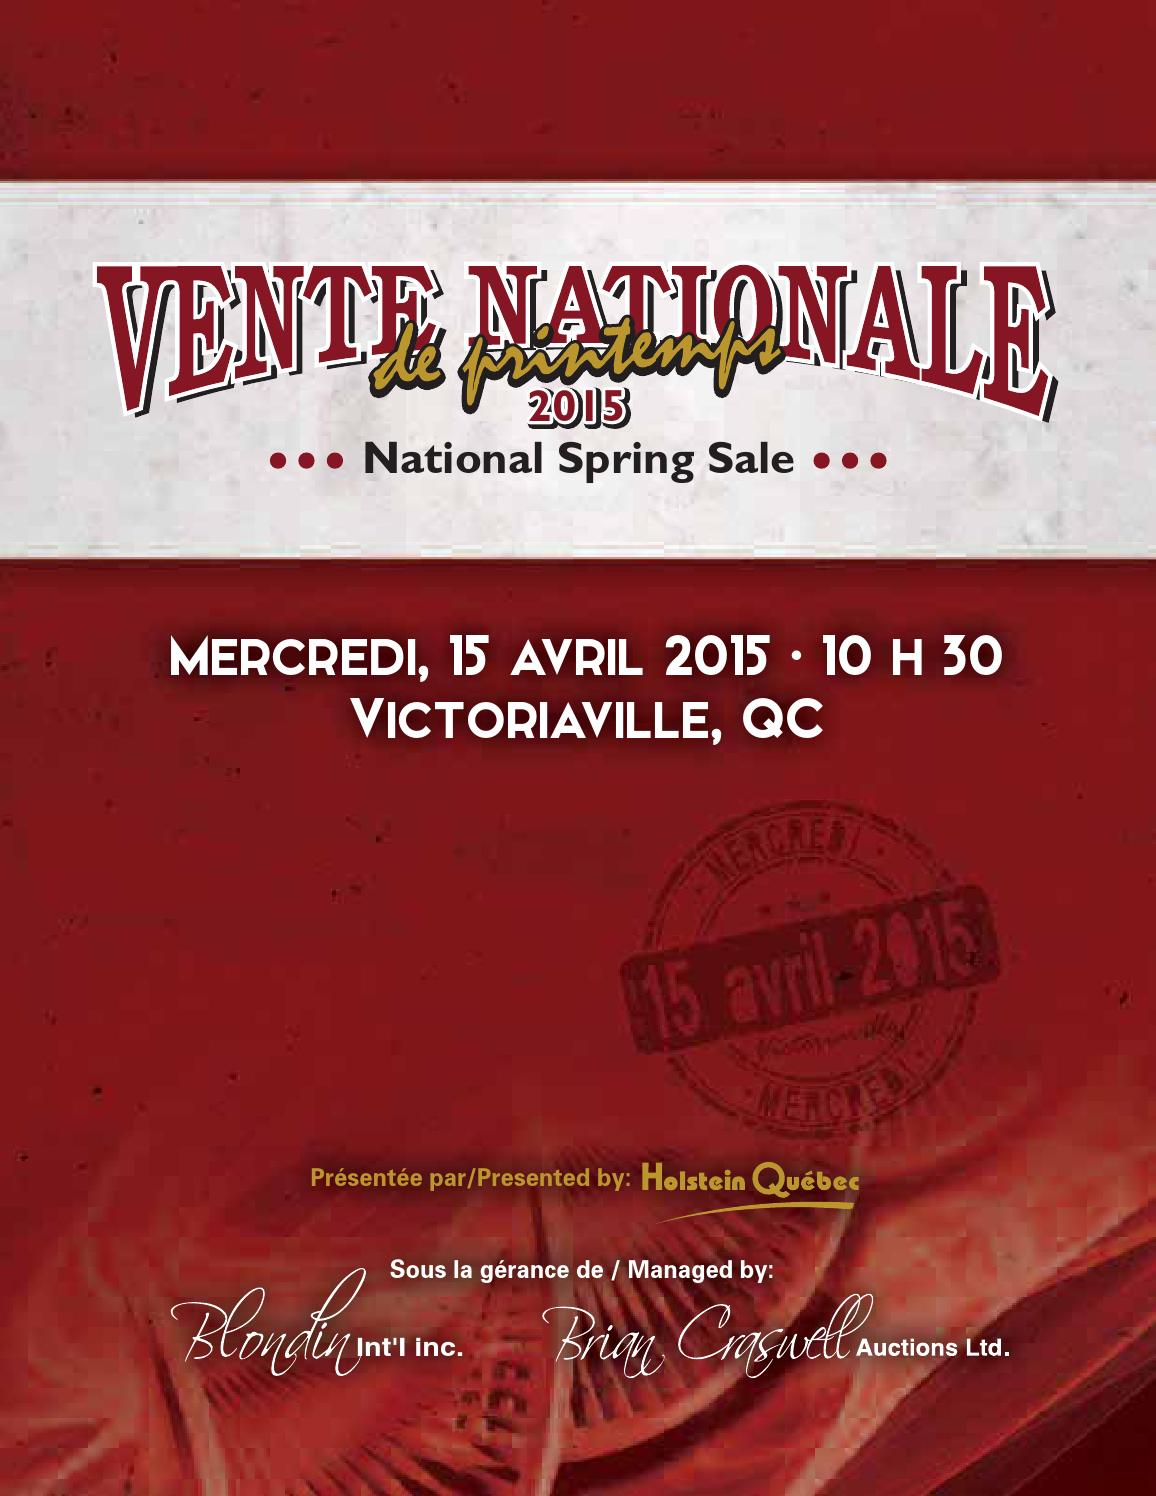 S303274dfrankreich Karte Cote D Azur.Vente Nationale Catalogue By Amber Craswell Issuu